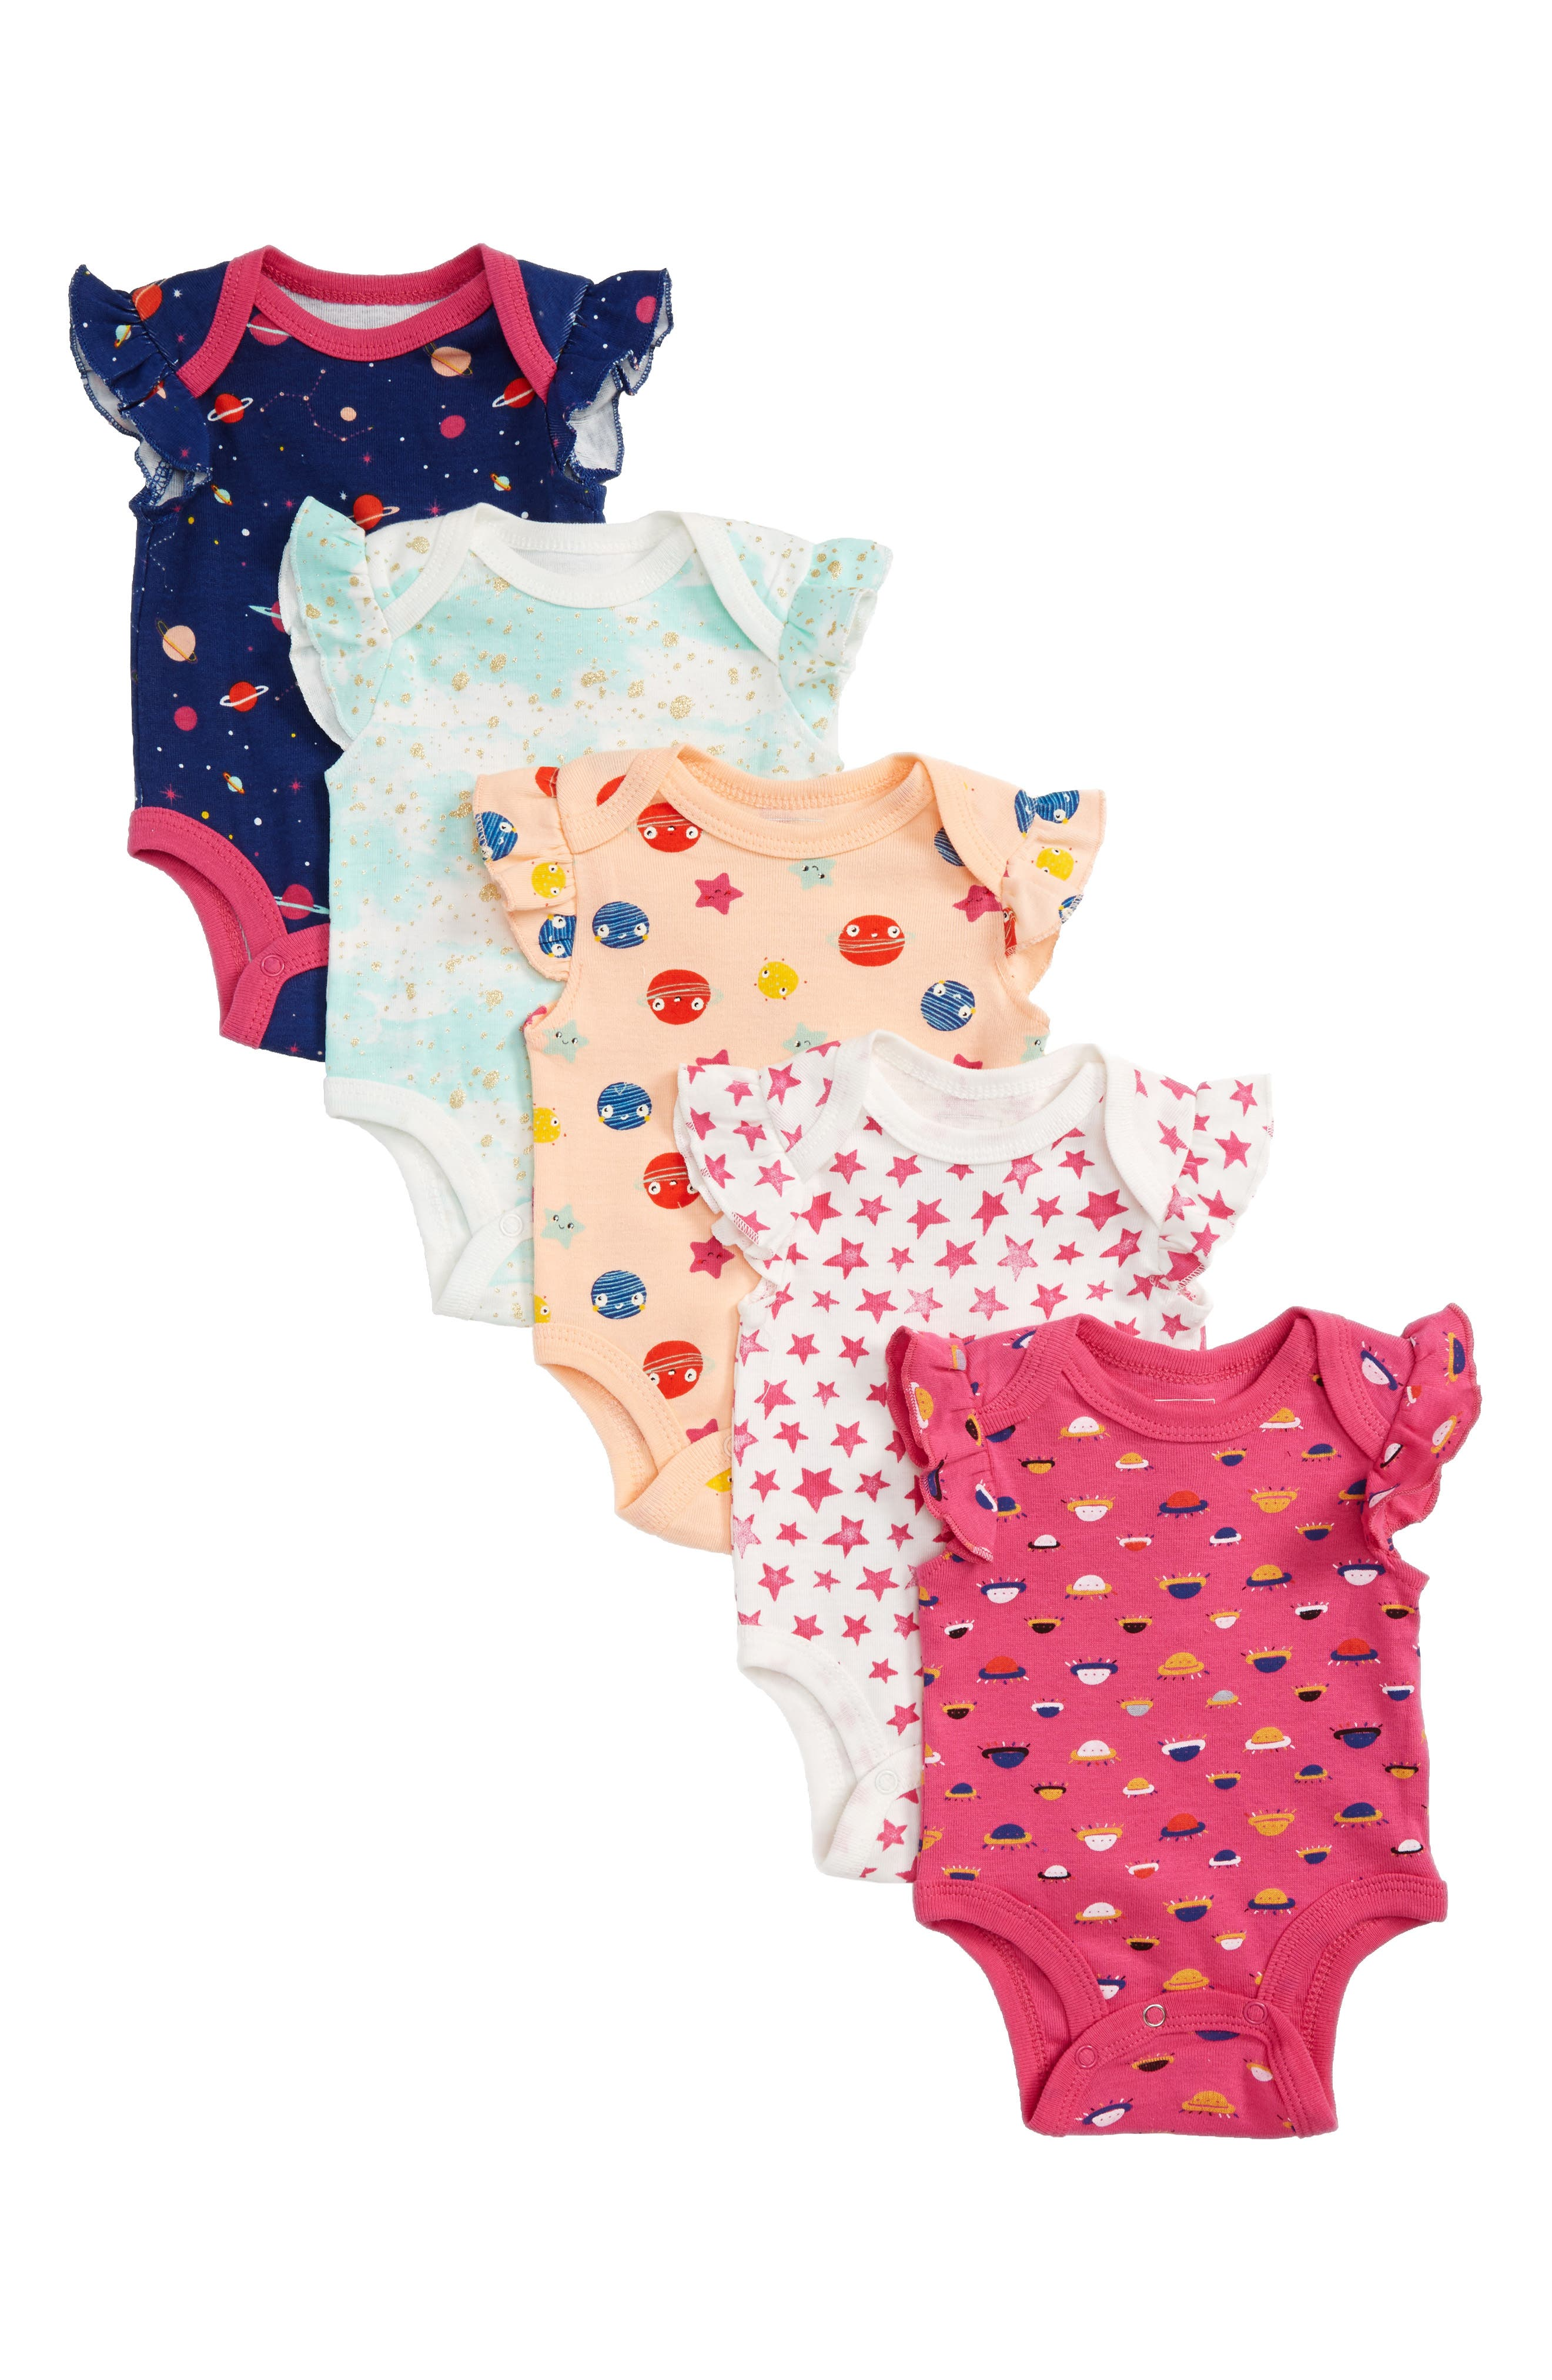 Welcome Tiny Human 5-Pack Bodysuits,                             Main thumbnail 1, color,                             650